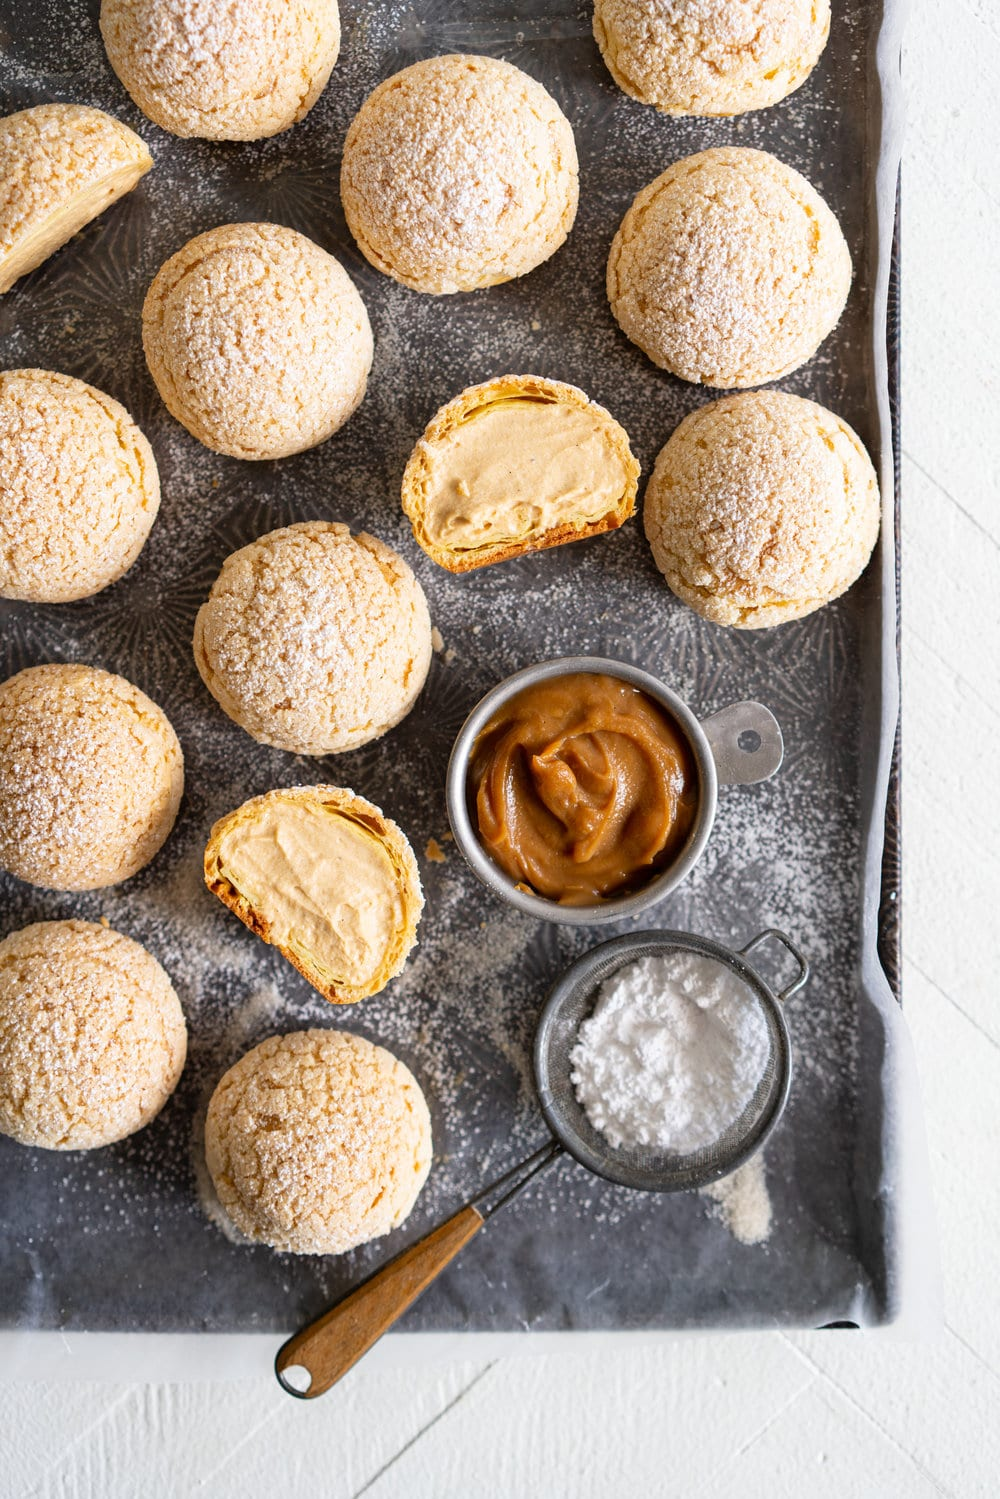 Golden Sugar Choux au Craquelin - Cream Puffs with Salted Caramel Diplomat Cream. These easy cream puffs, topped with crispy craquelin, are stuffed full with a salted caramel pastry cream, which is folded into softly whipped cream to form salted caramel diplomat cream. #creampuffs #chouxaucraquelin #saltedcaramel #diplomatcream